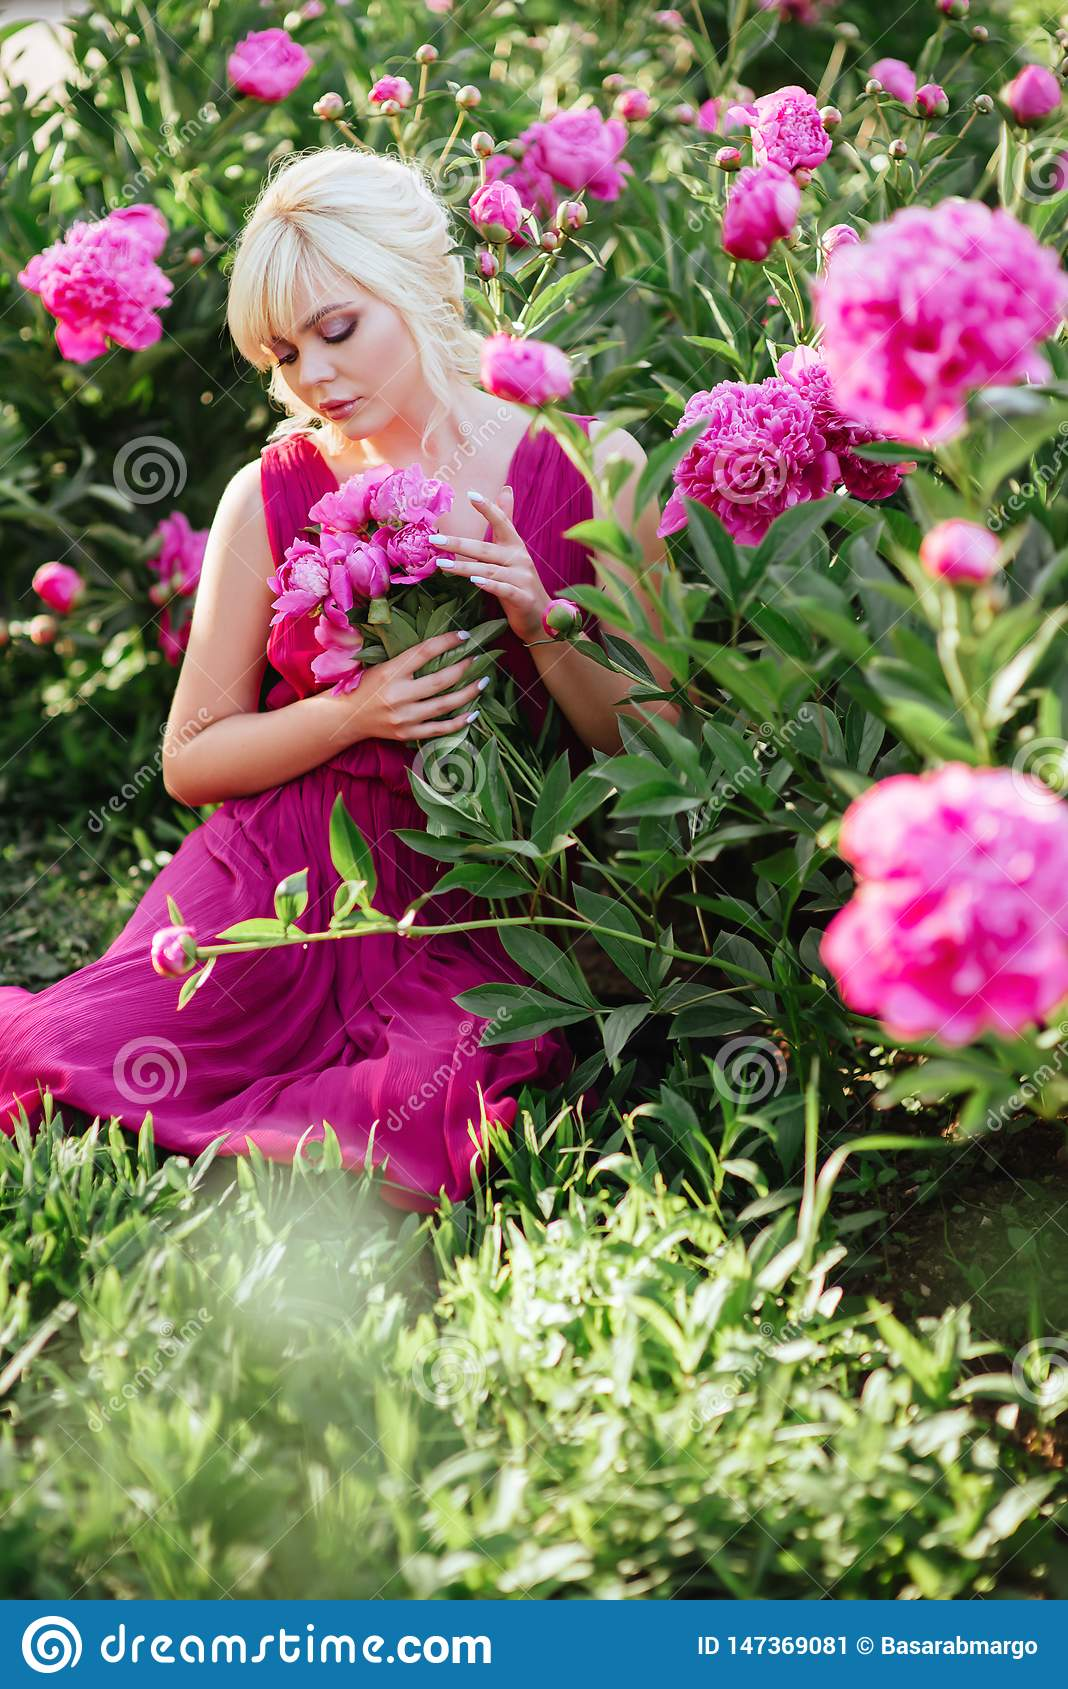 Outdoor close up portrait of beautiful young woman in the blooming garden. Female spring fashion concept